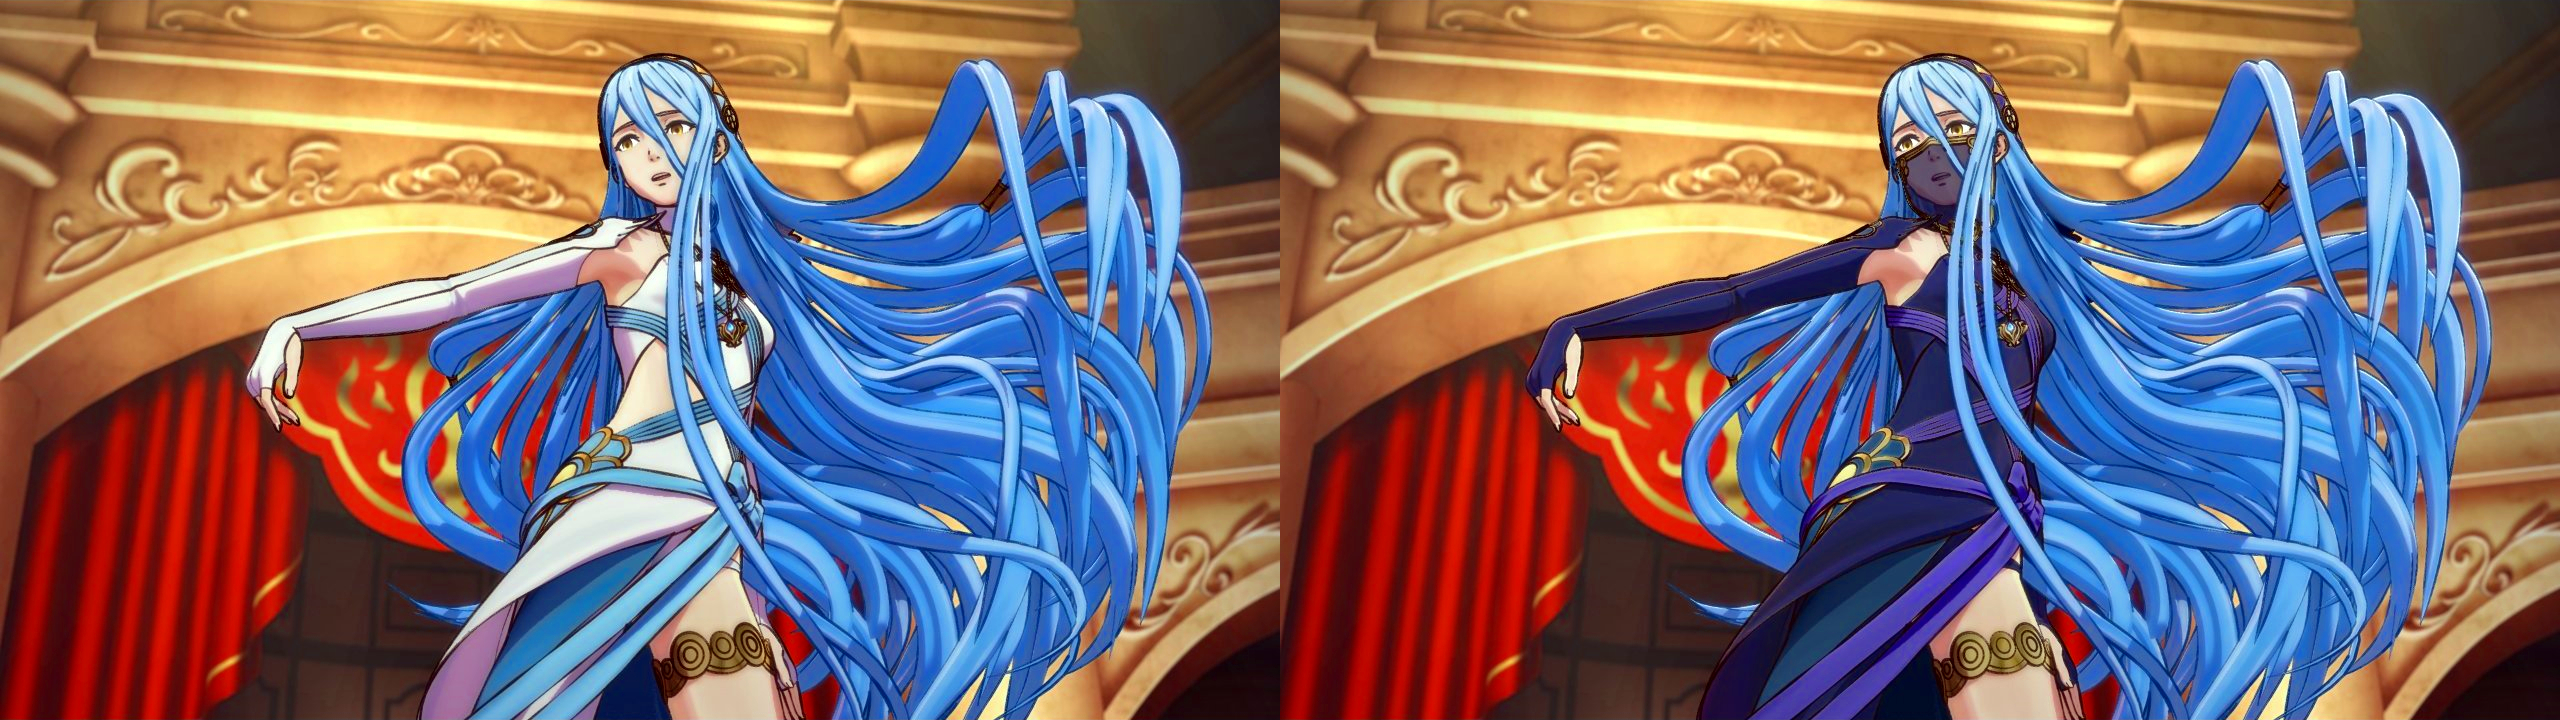 The two dresses Aqua will wear depending on your choice.